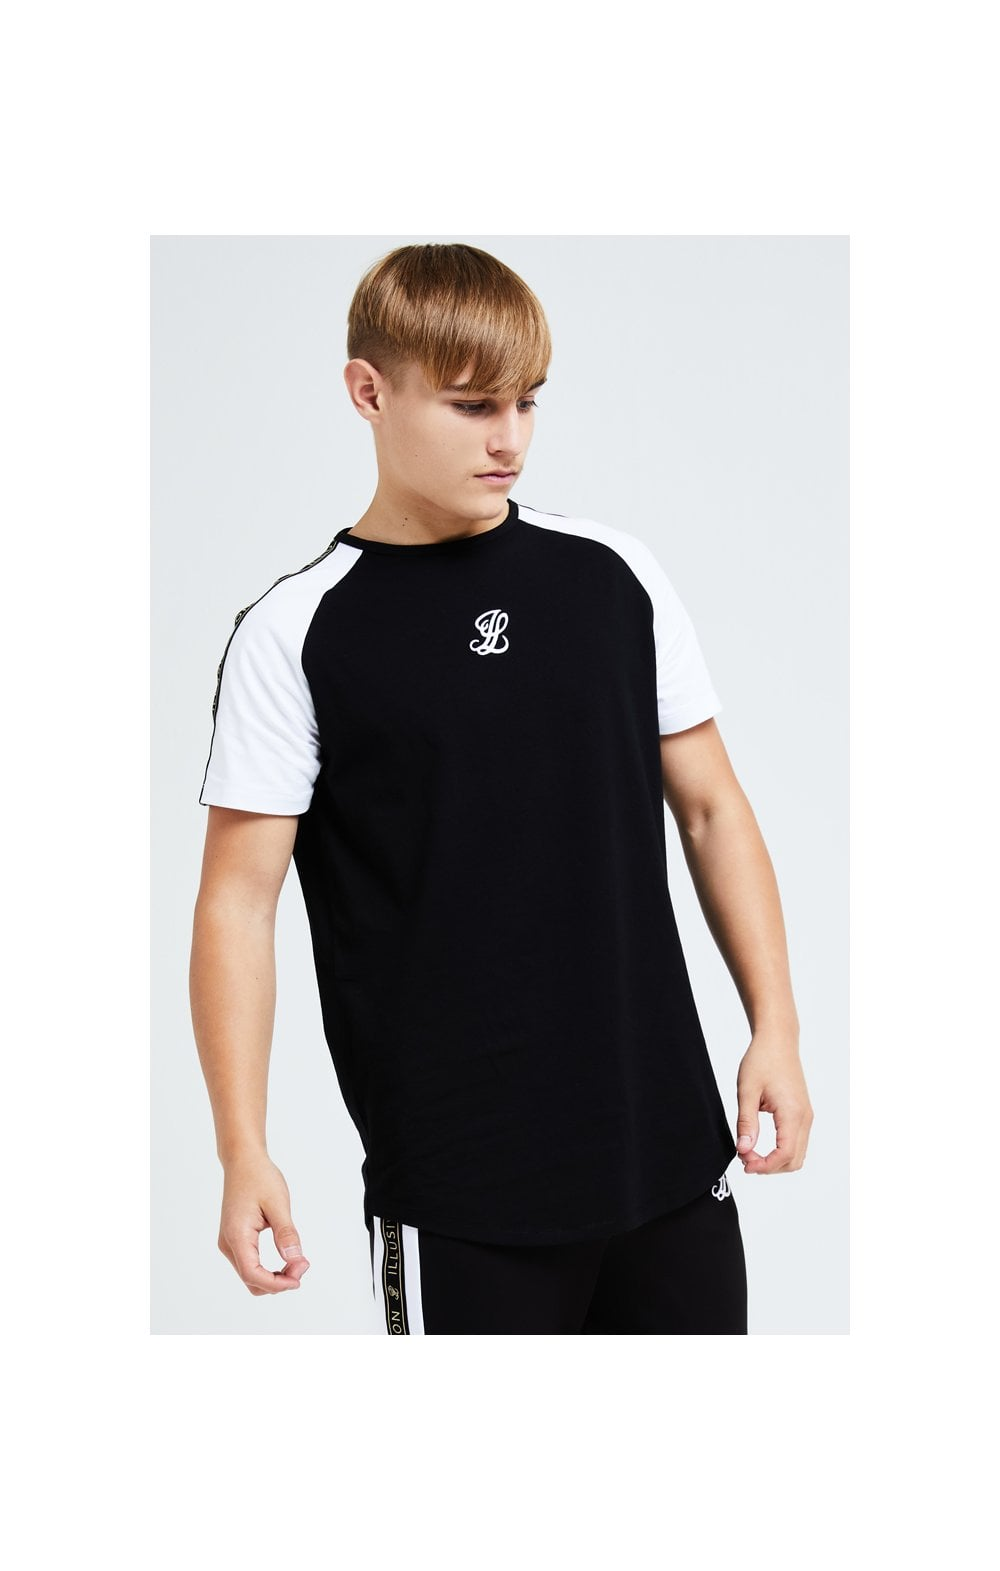 Illusive London Diverge Raglan Tee - Black Gold & White